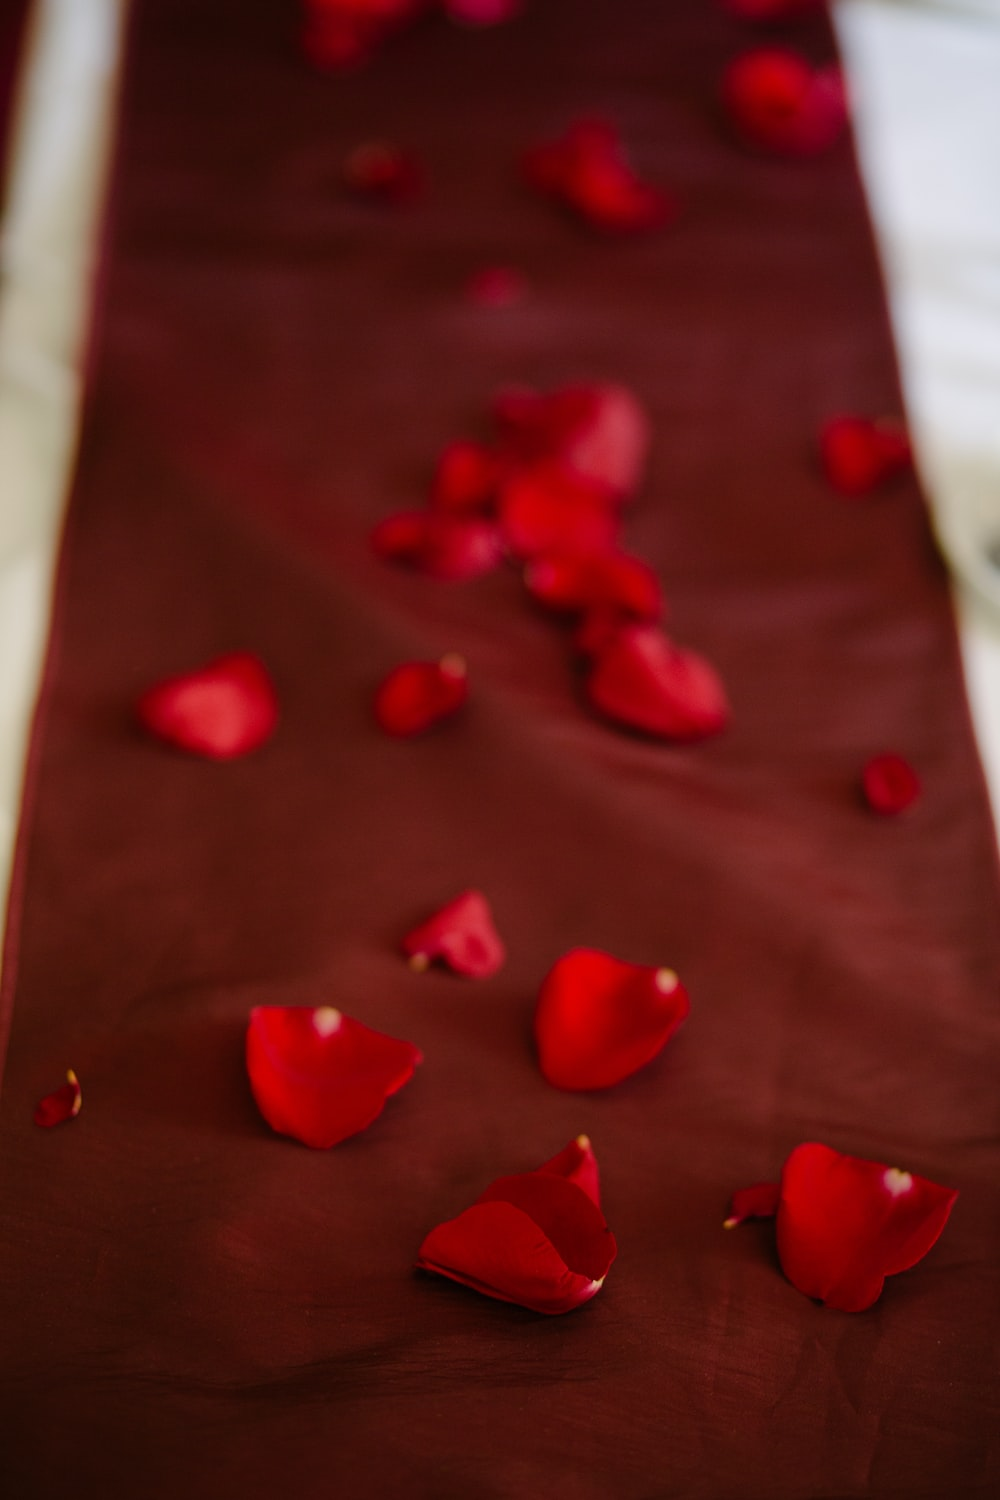 red flower petals on brown textile